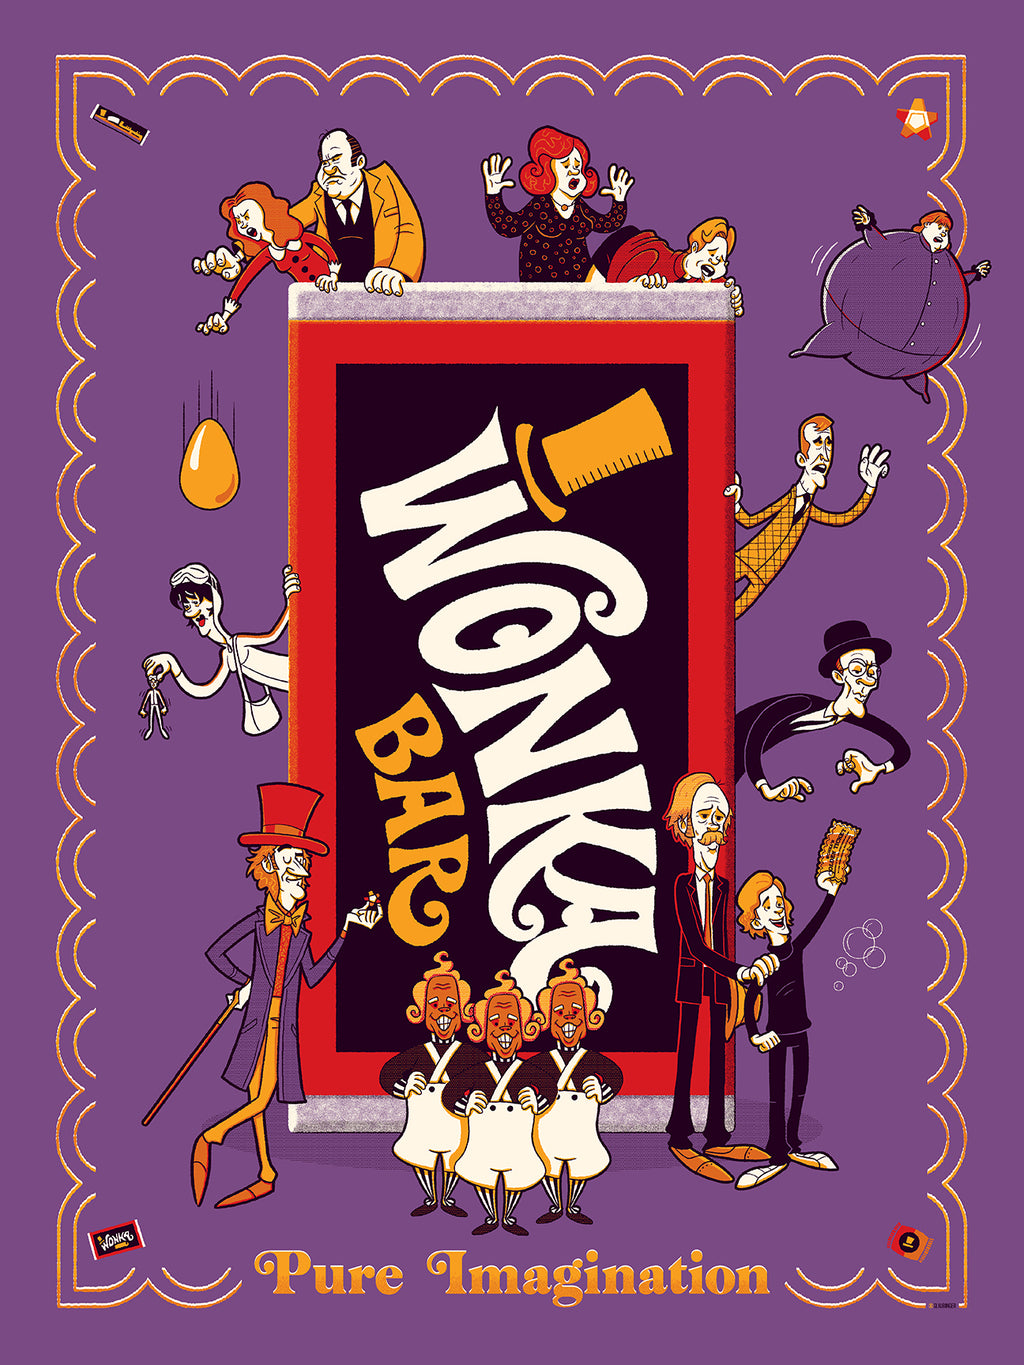 Willy Wonka & the Chocolate Factory by Ian Glaubinger